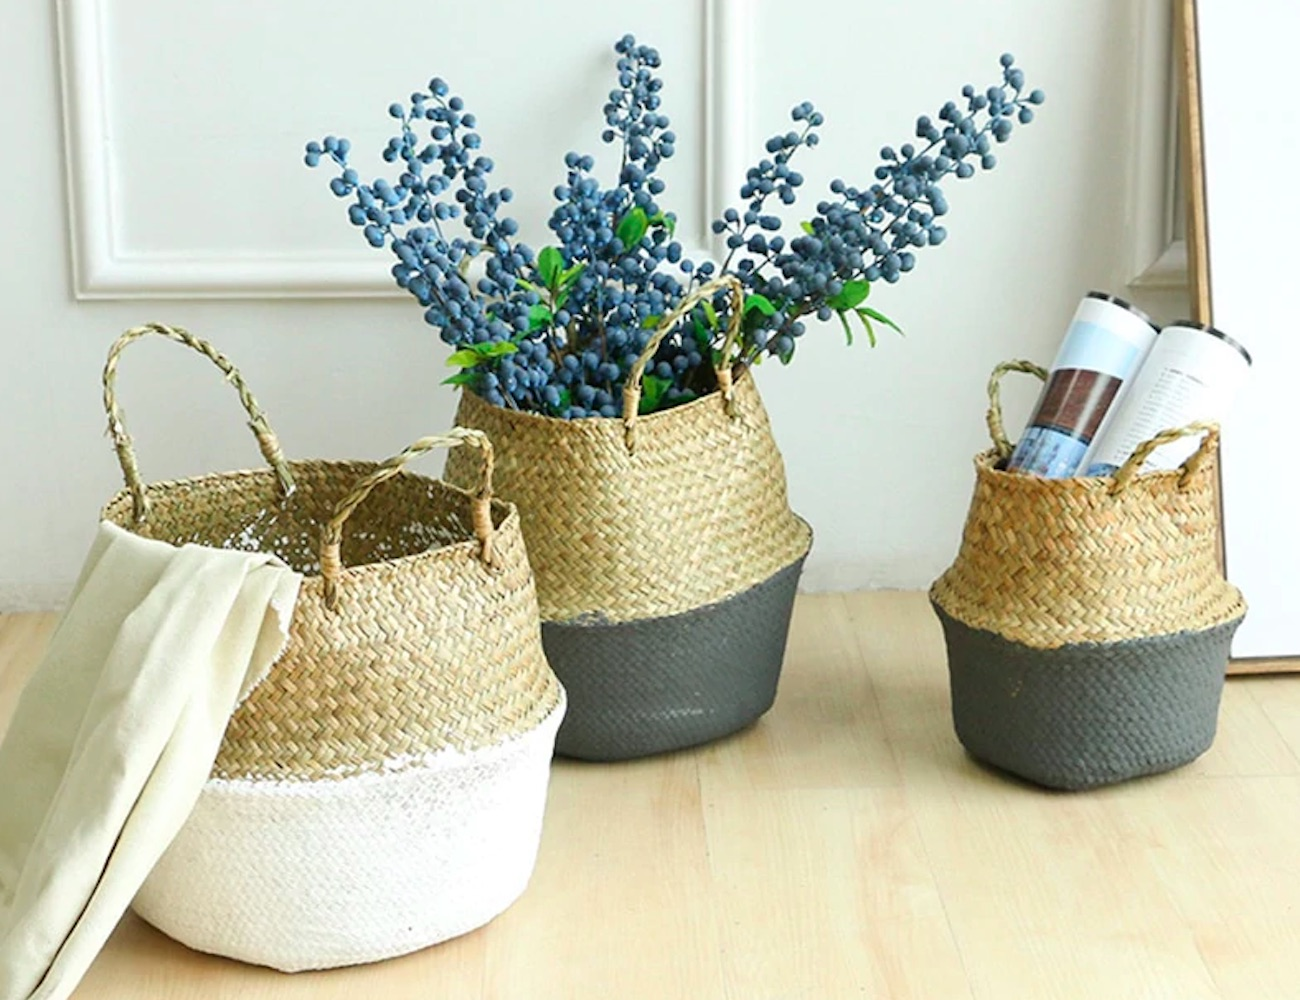 Handmade Seagrass Wicker Storage Baskets come with a pop of color